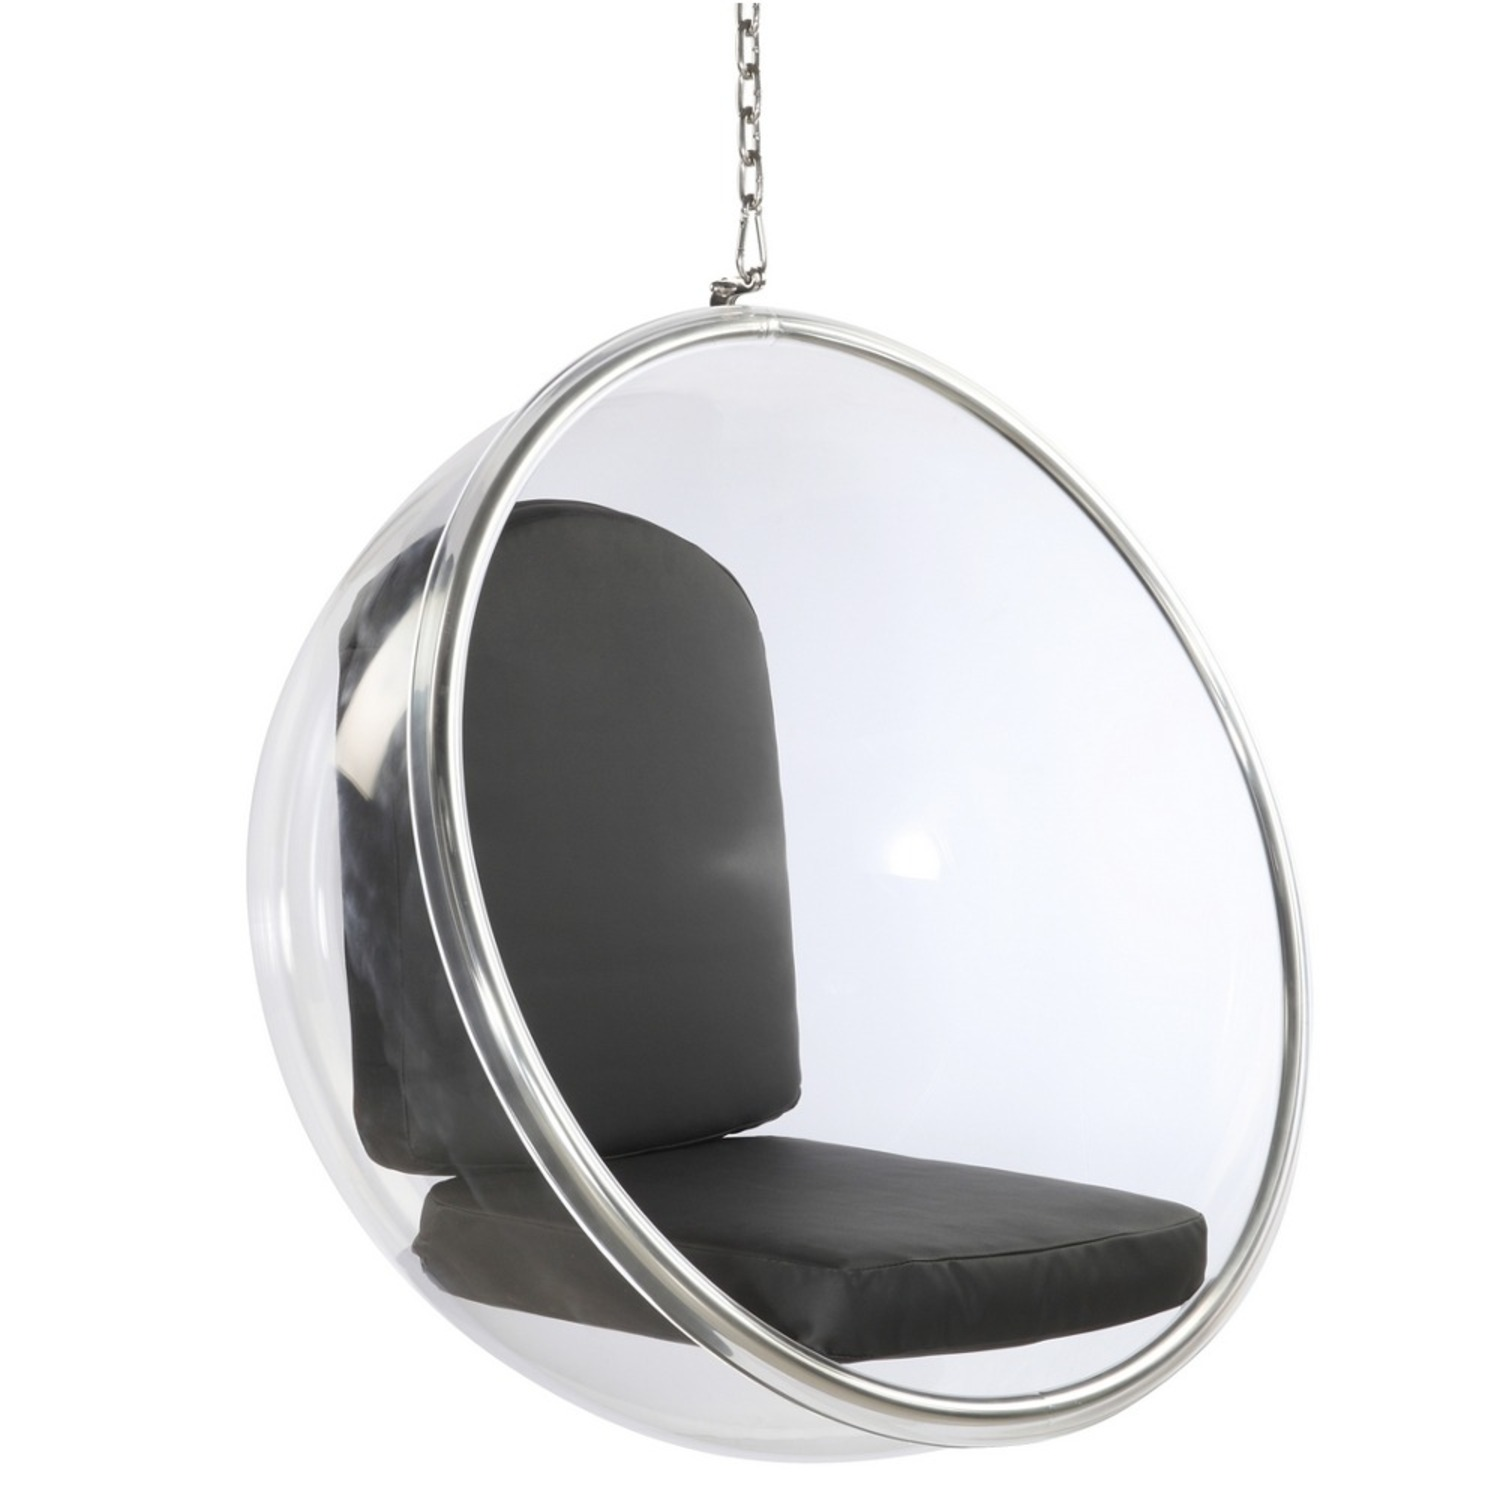 Hanging Chair In Clear Acrylic & Black PU Leather - image-0